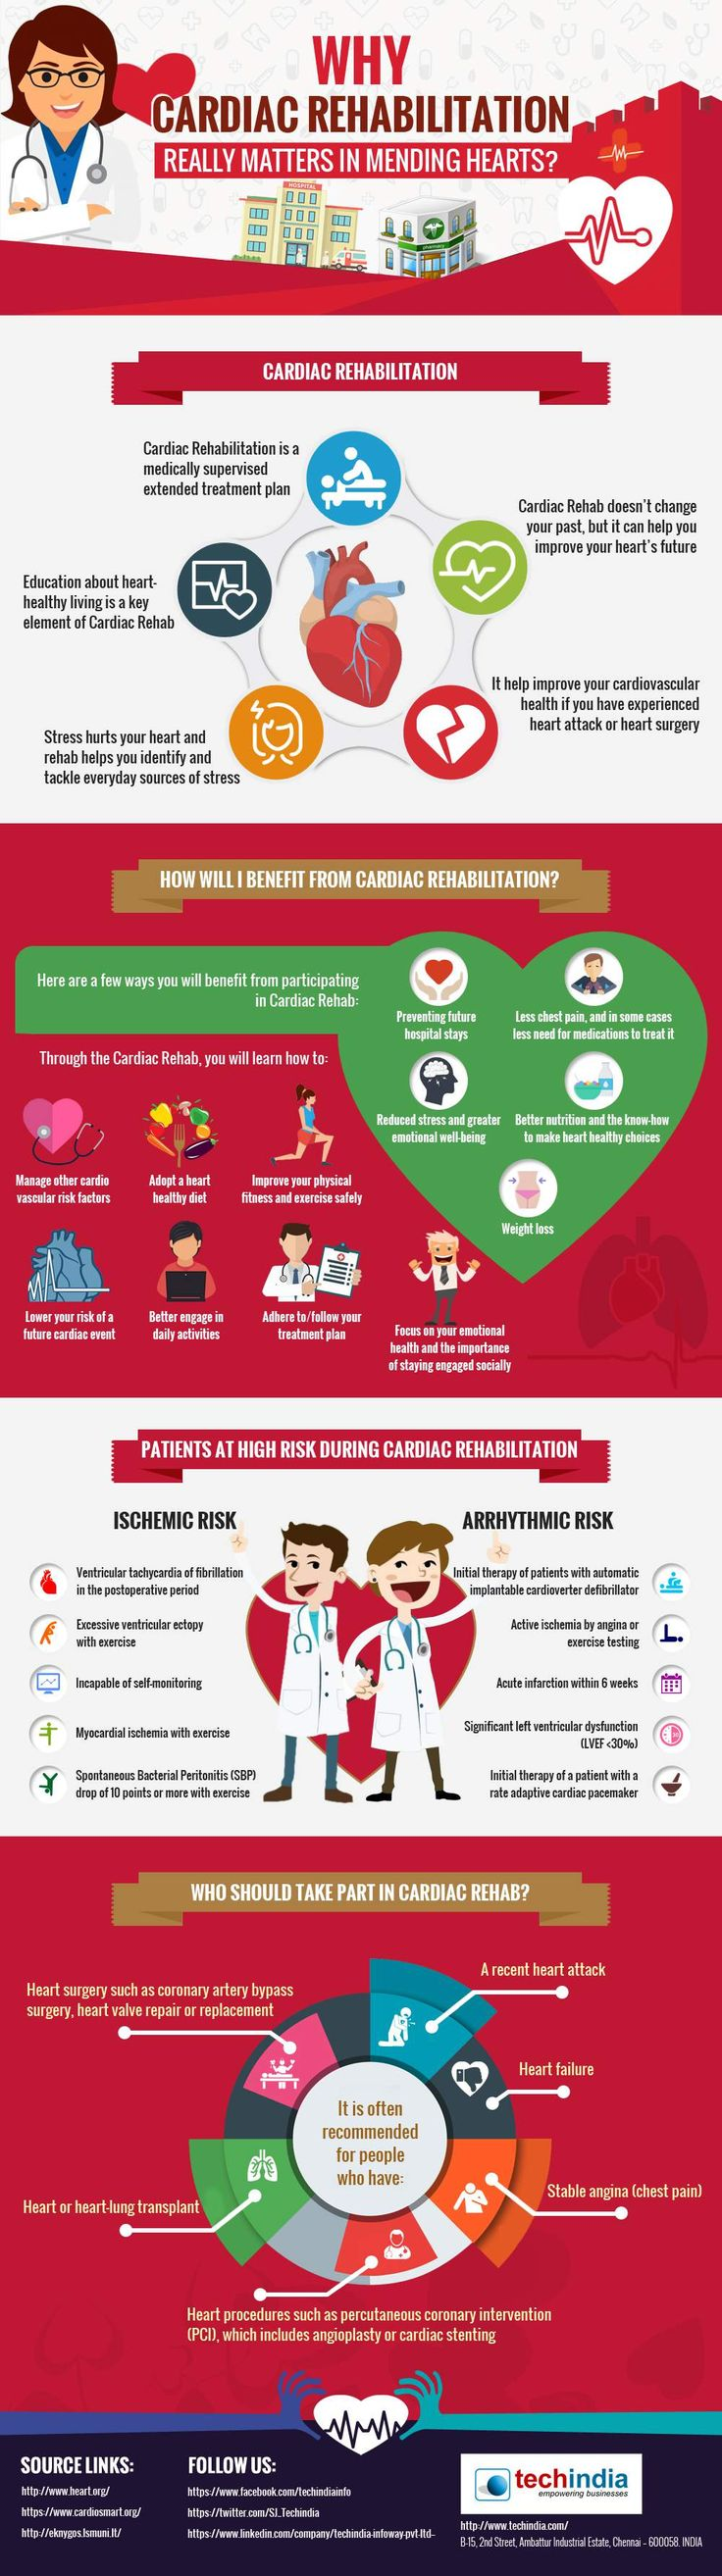 Why Cardiac Rehabilitation Really Matters in Mending Hearts.